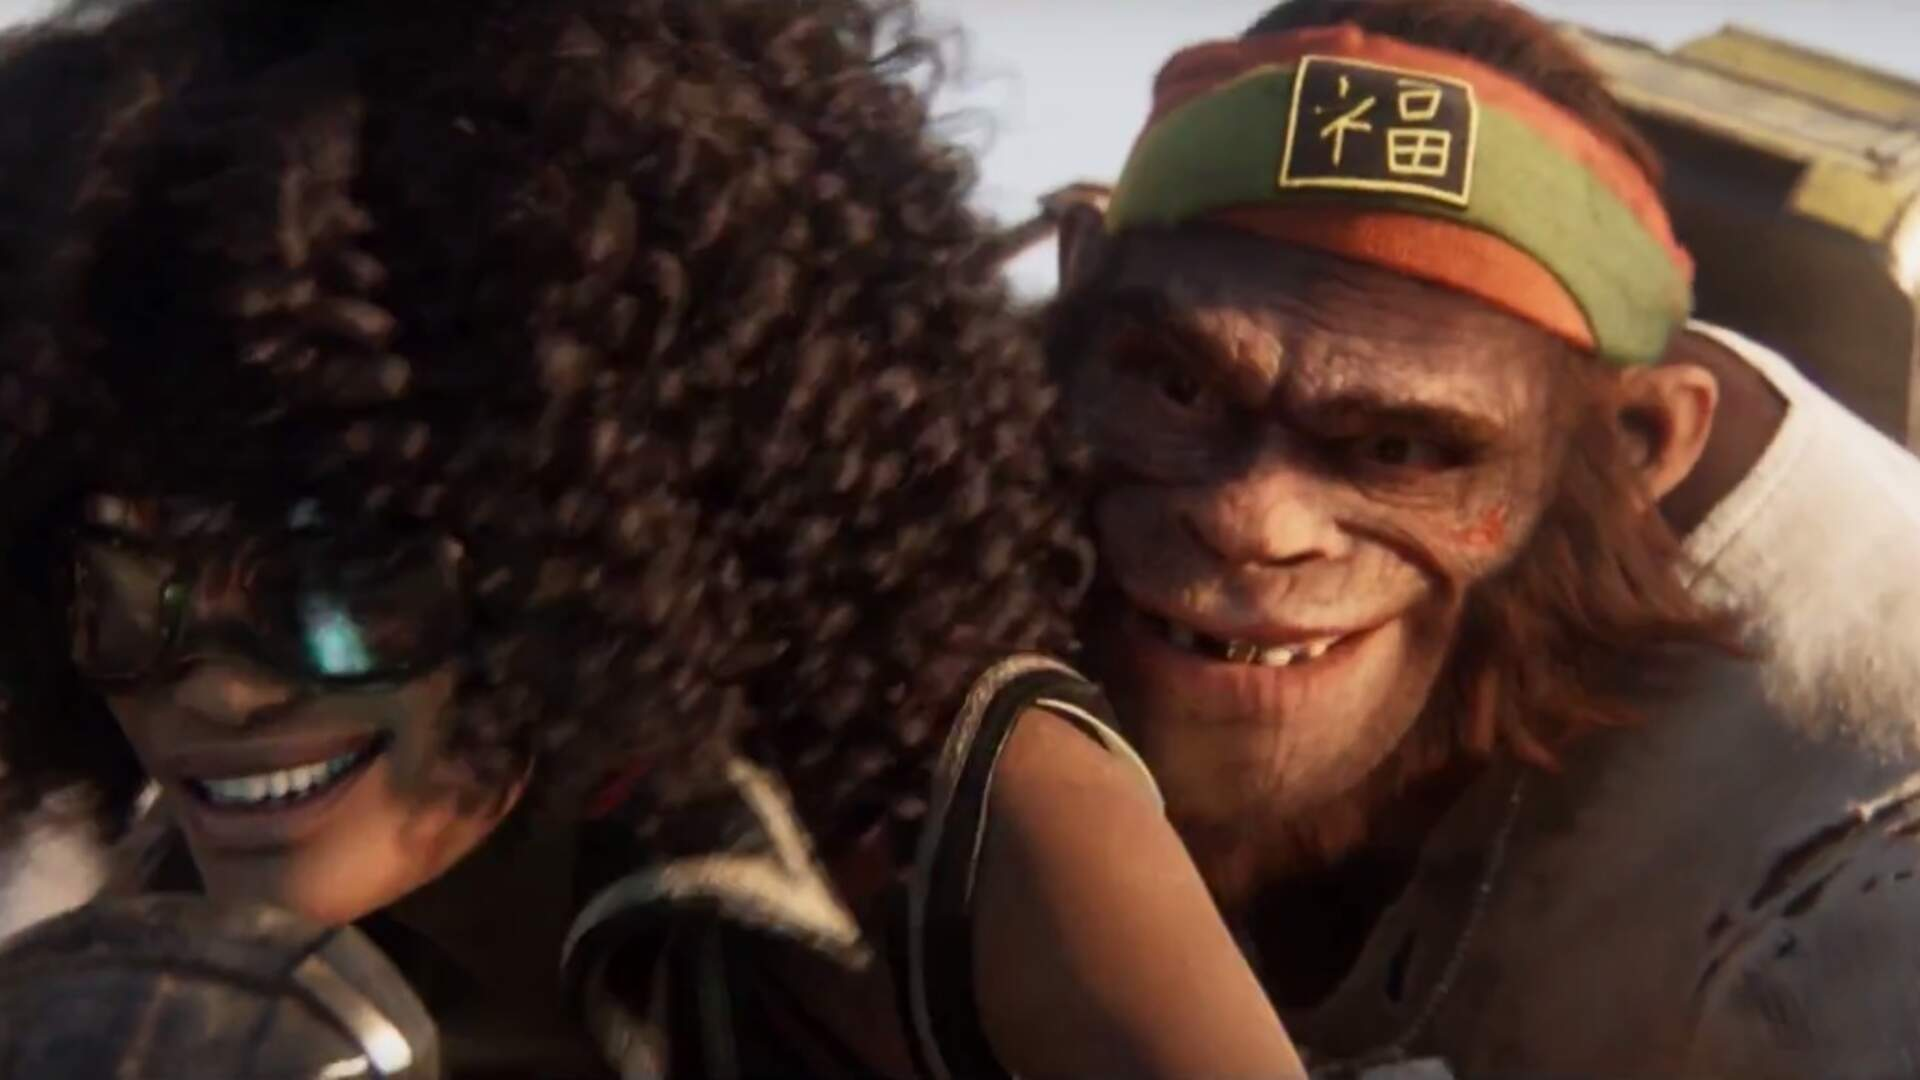 Beyond Good and Evil 2 - Release Date, Setting, E3 2017 Gameplay Demo, Help Make the Game - Everything we Know